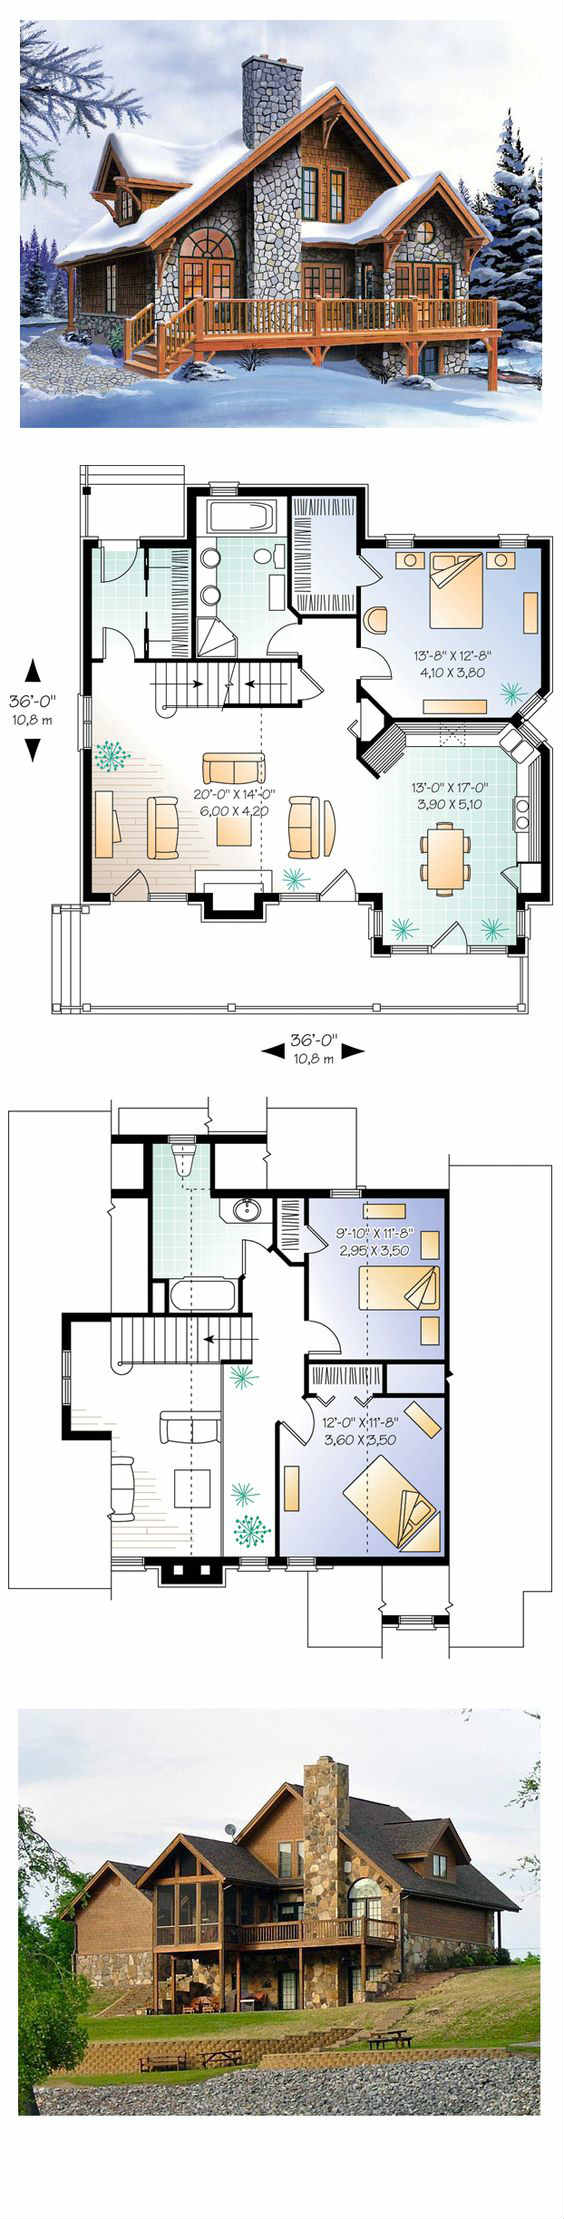 Different floor plans 28 images four different floor for Different types of house plans